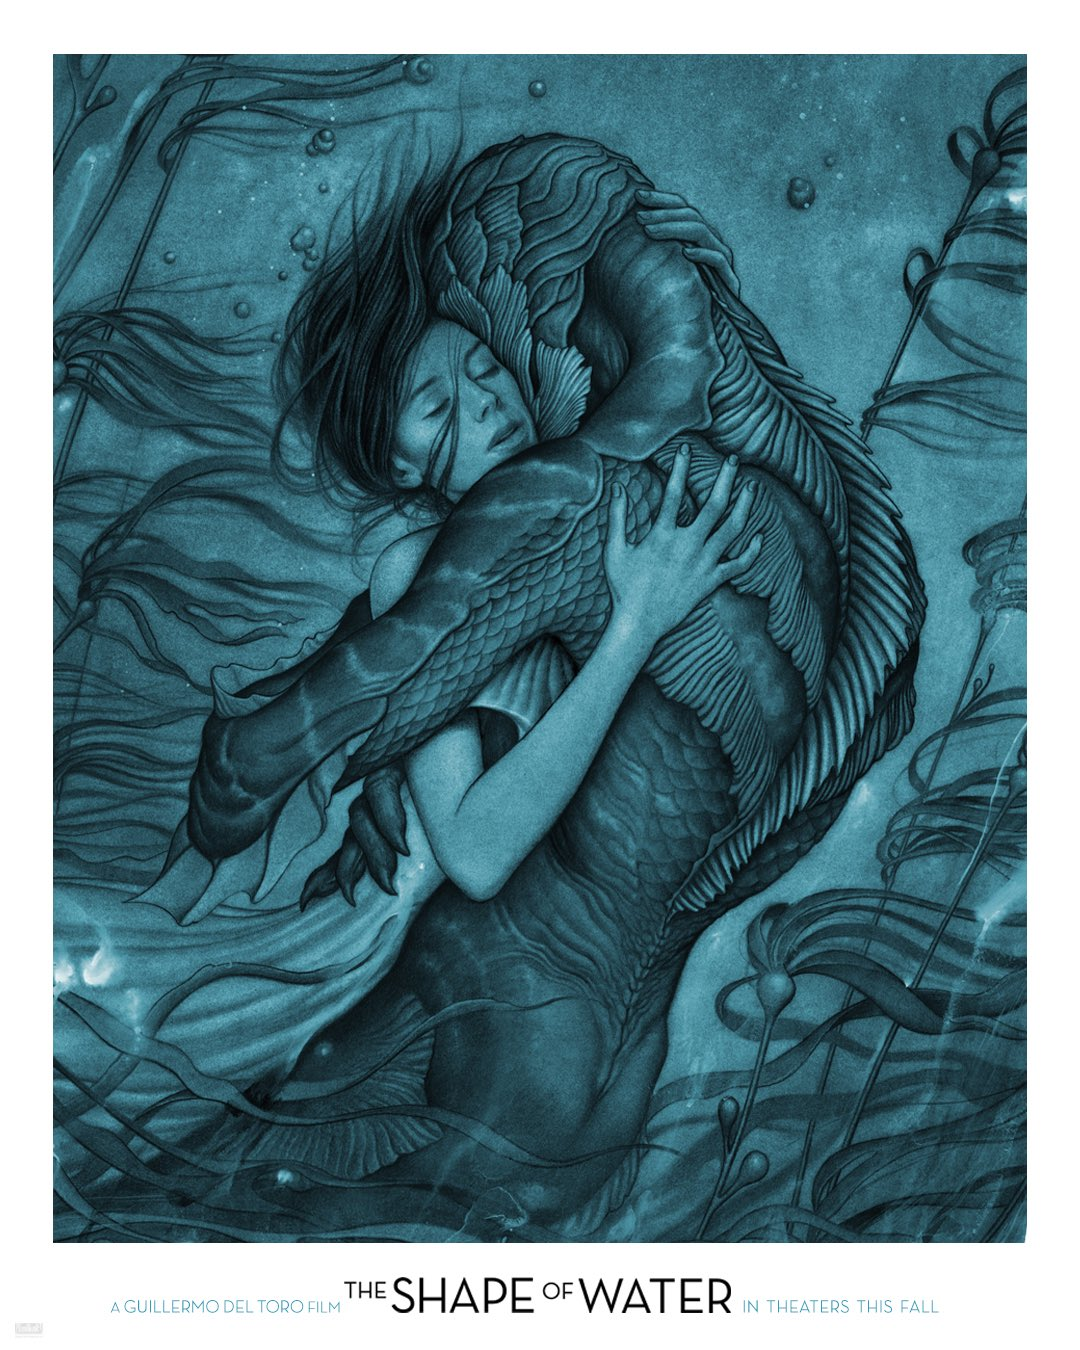 the shape of water trailer and artwork | concept art world